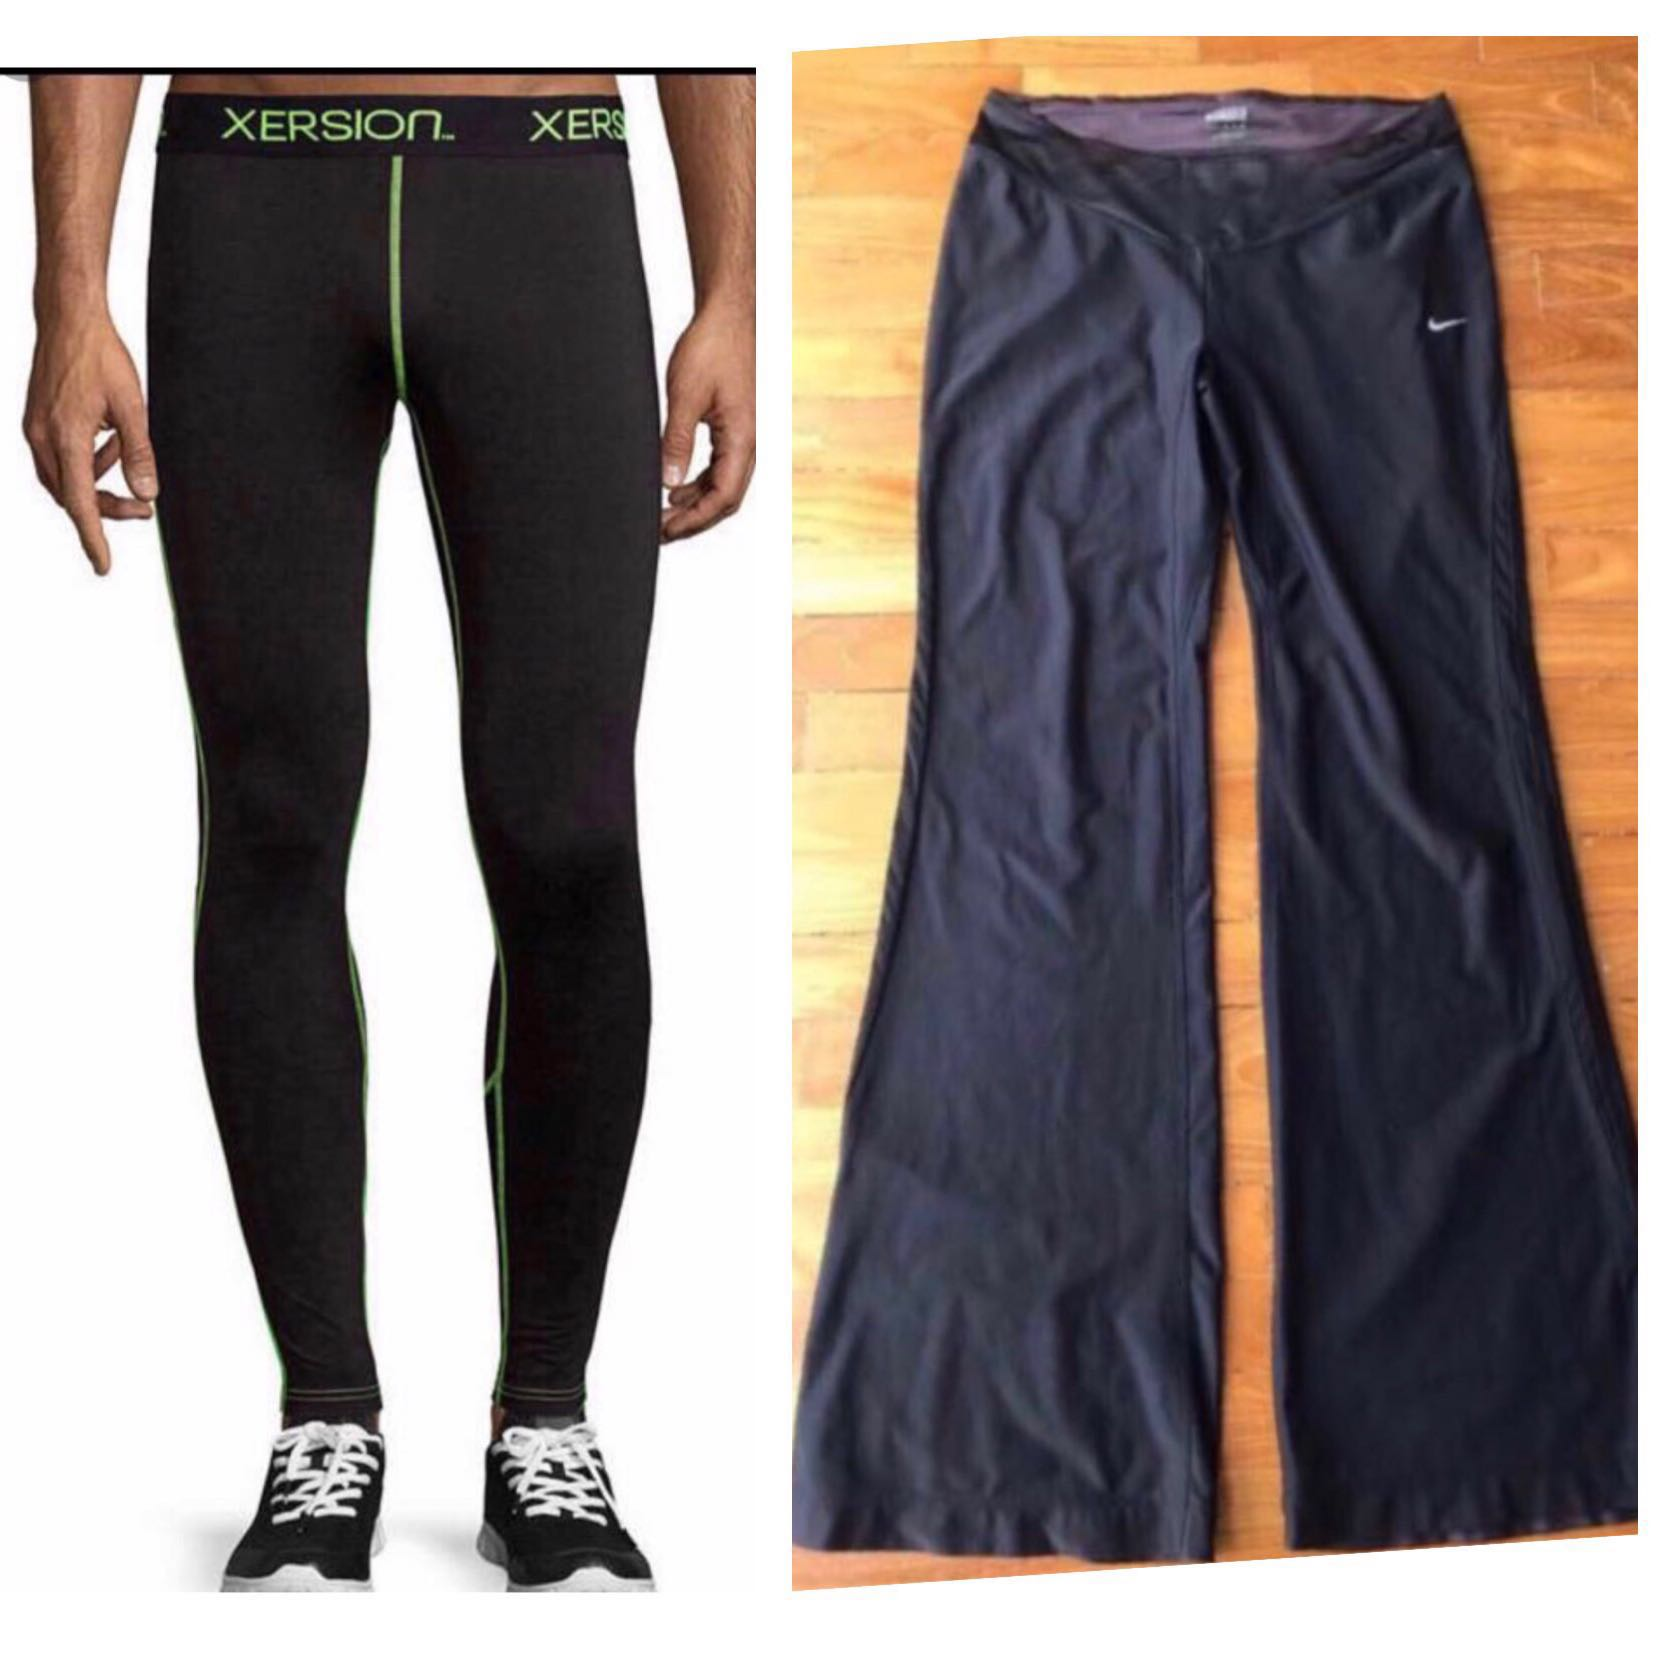 615b574aee Brand New US Men'S Compression Pants Base Layer Quick Dry Sports Running  Workout Leggings Nike Dri-Fit Black Long Pants, Sports, Sports Apparel on  Carousell